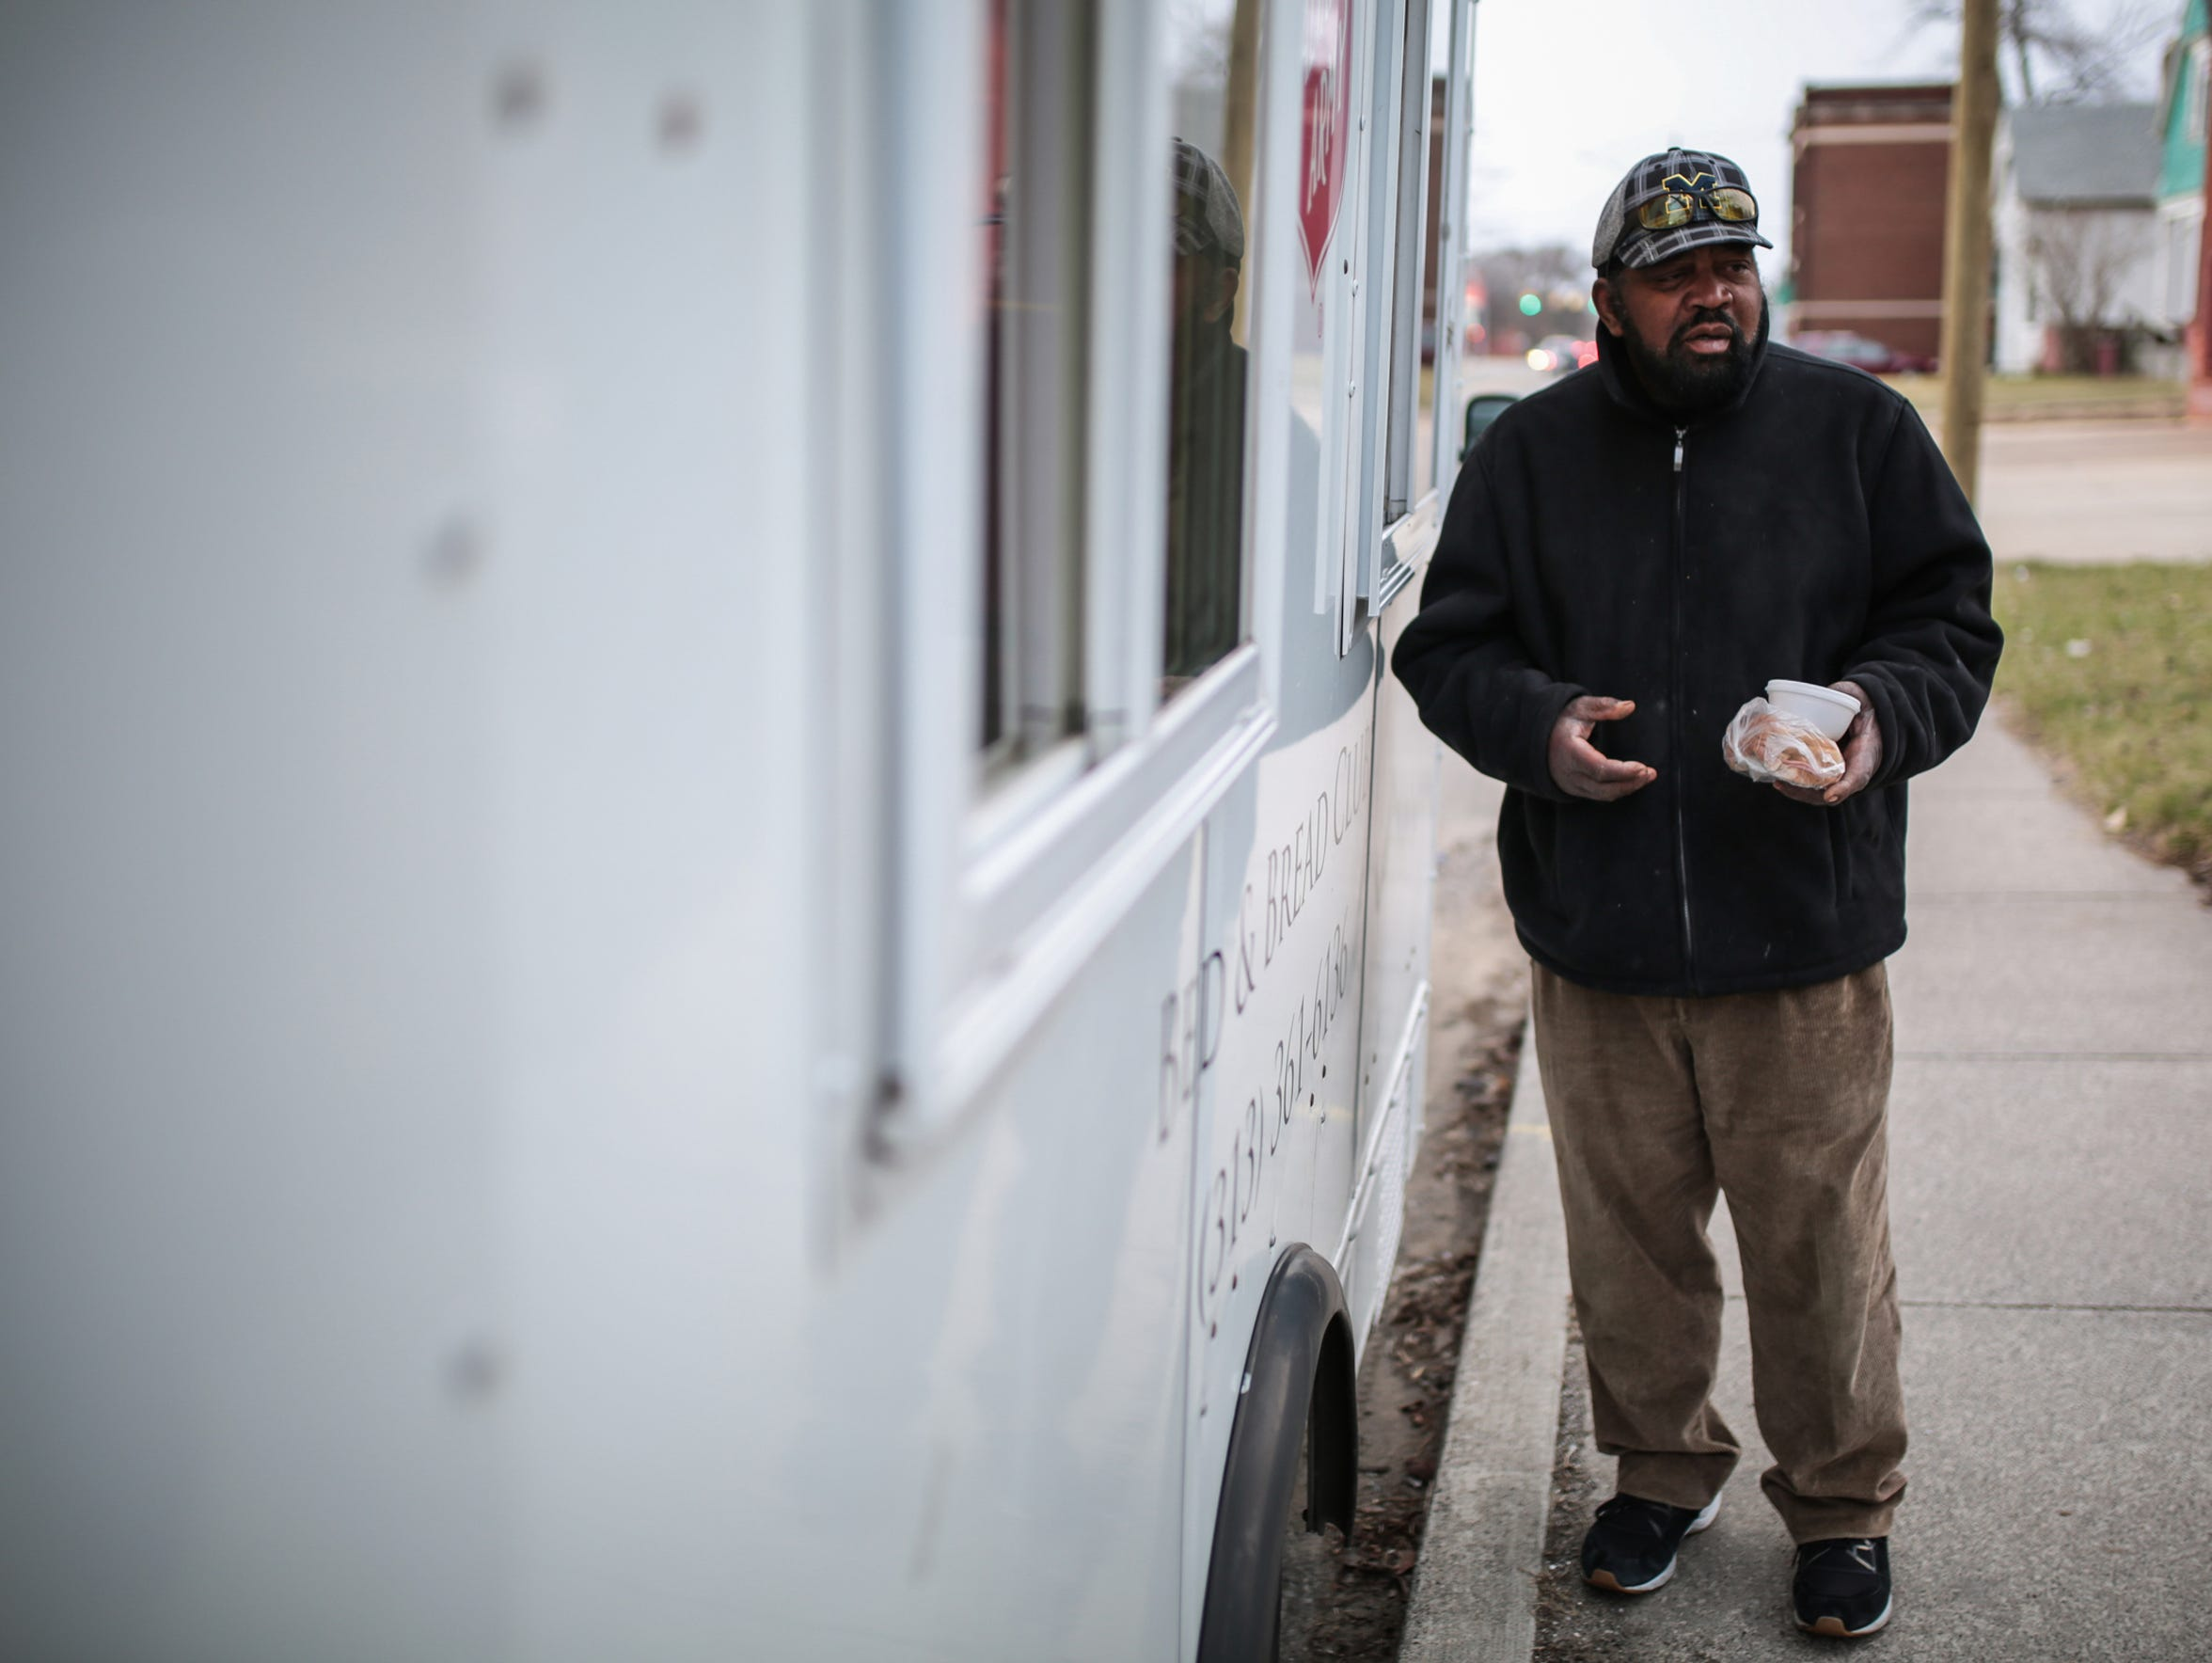 Darnell Taylor, 63, of Detroit receives a meal from